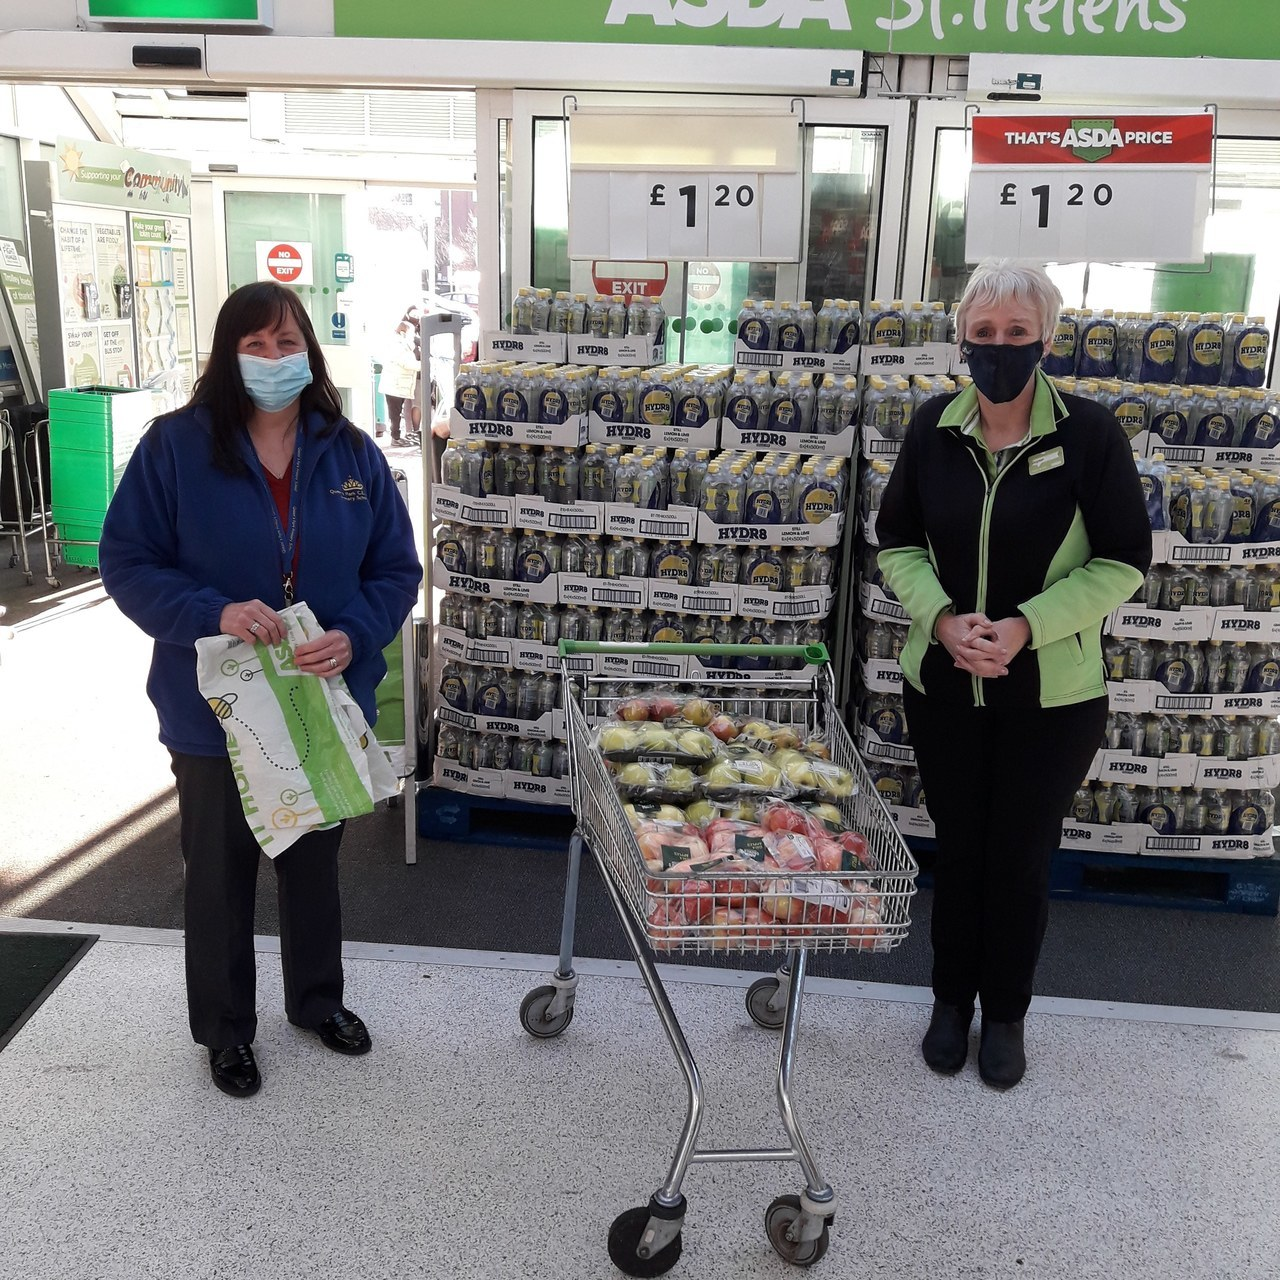 Asda St Helens supports key workers' children | Asda St Helens